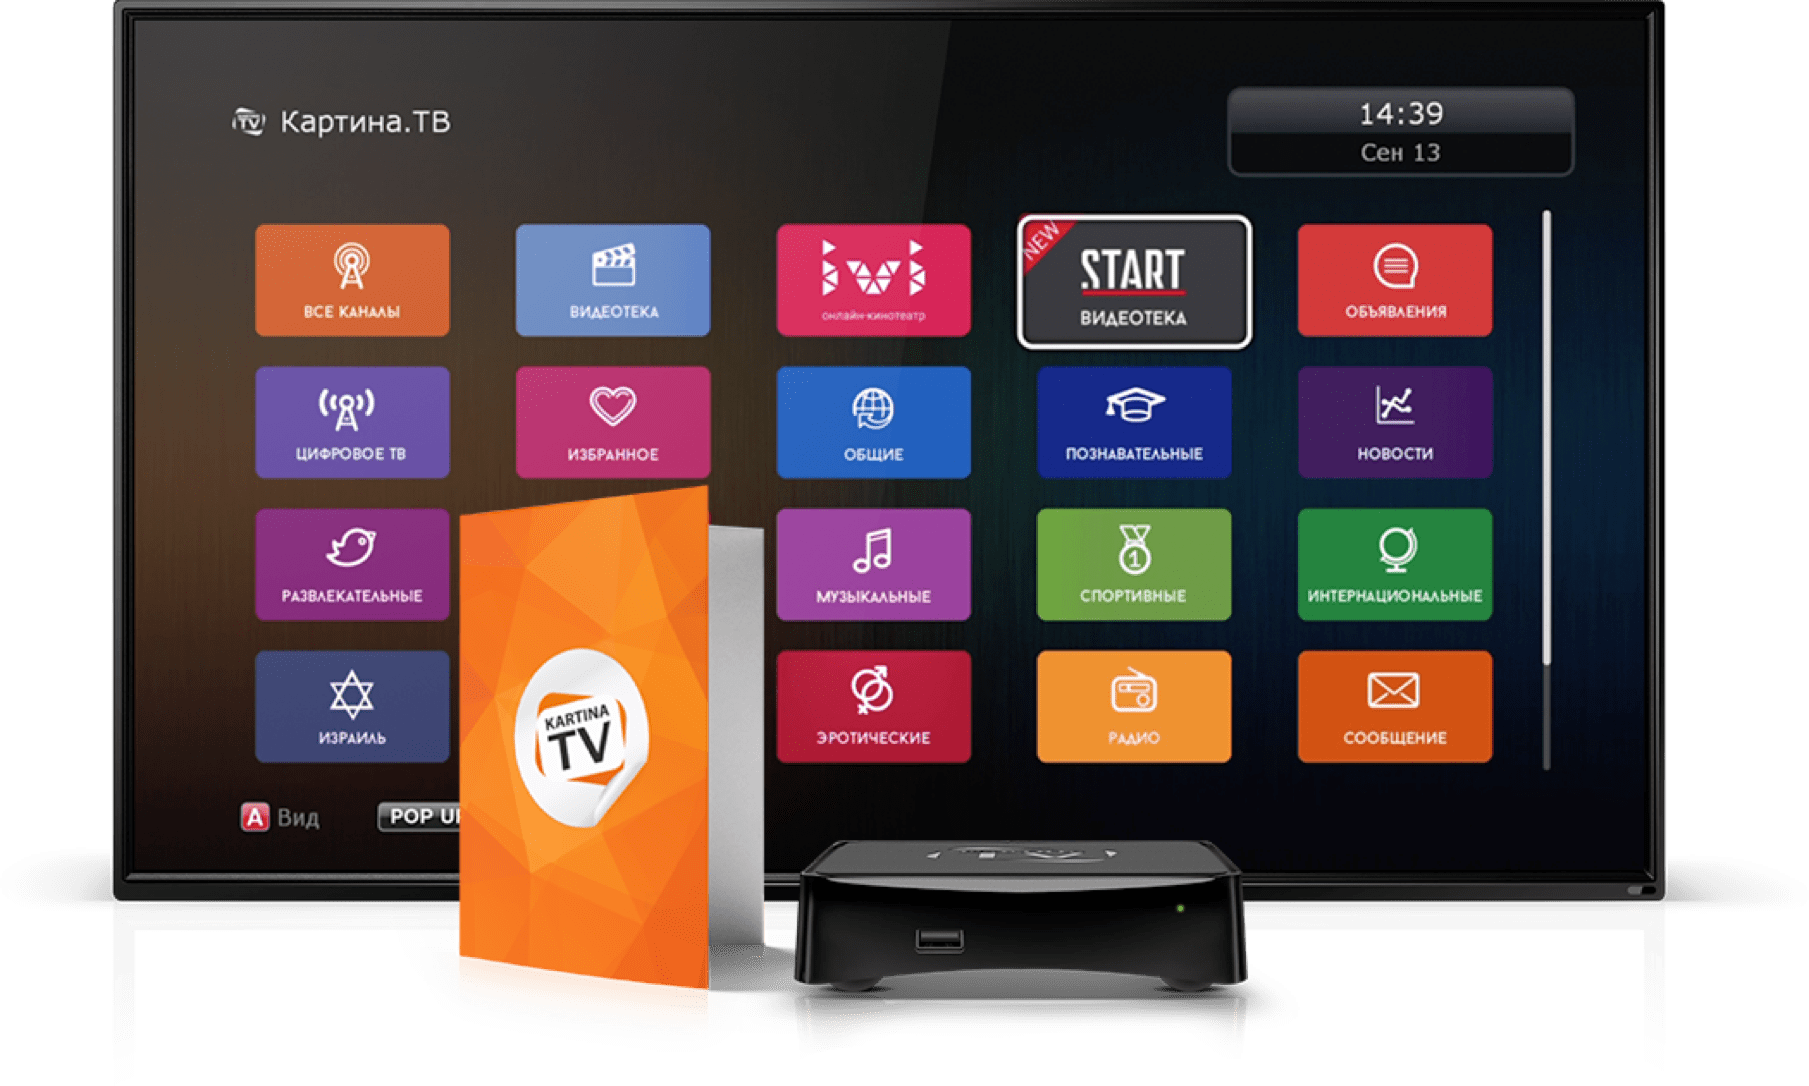 Kartina TV - watch Russian TV worldwide, 150 channels and 20